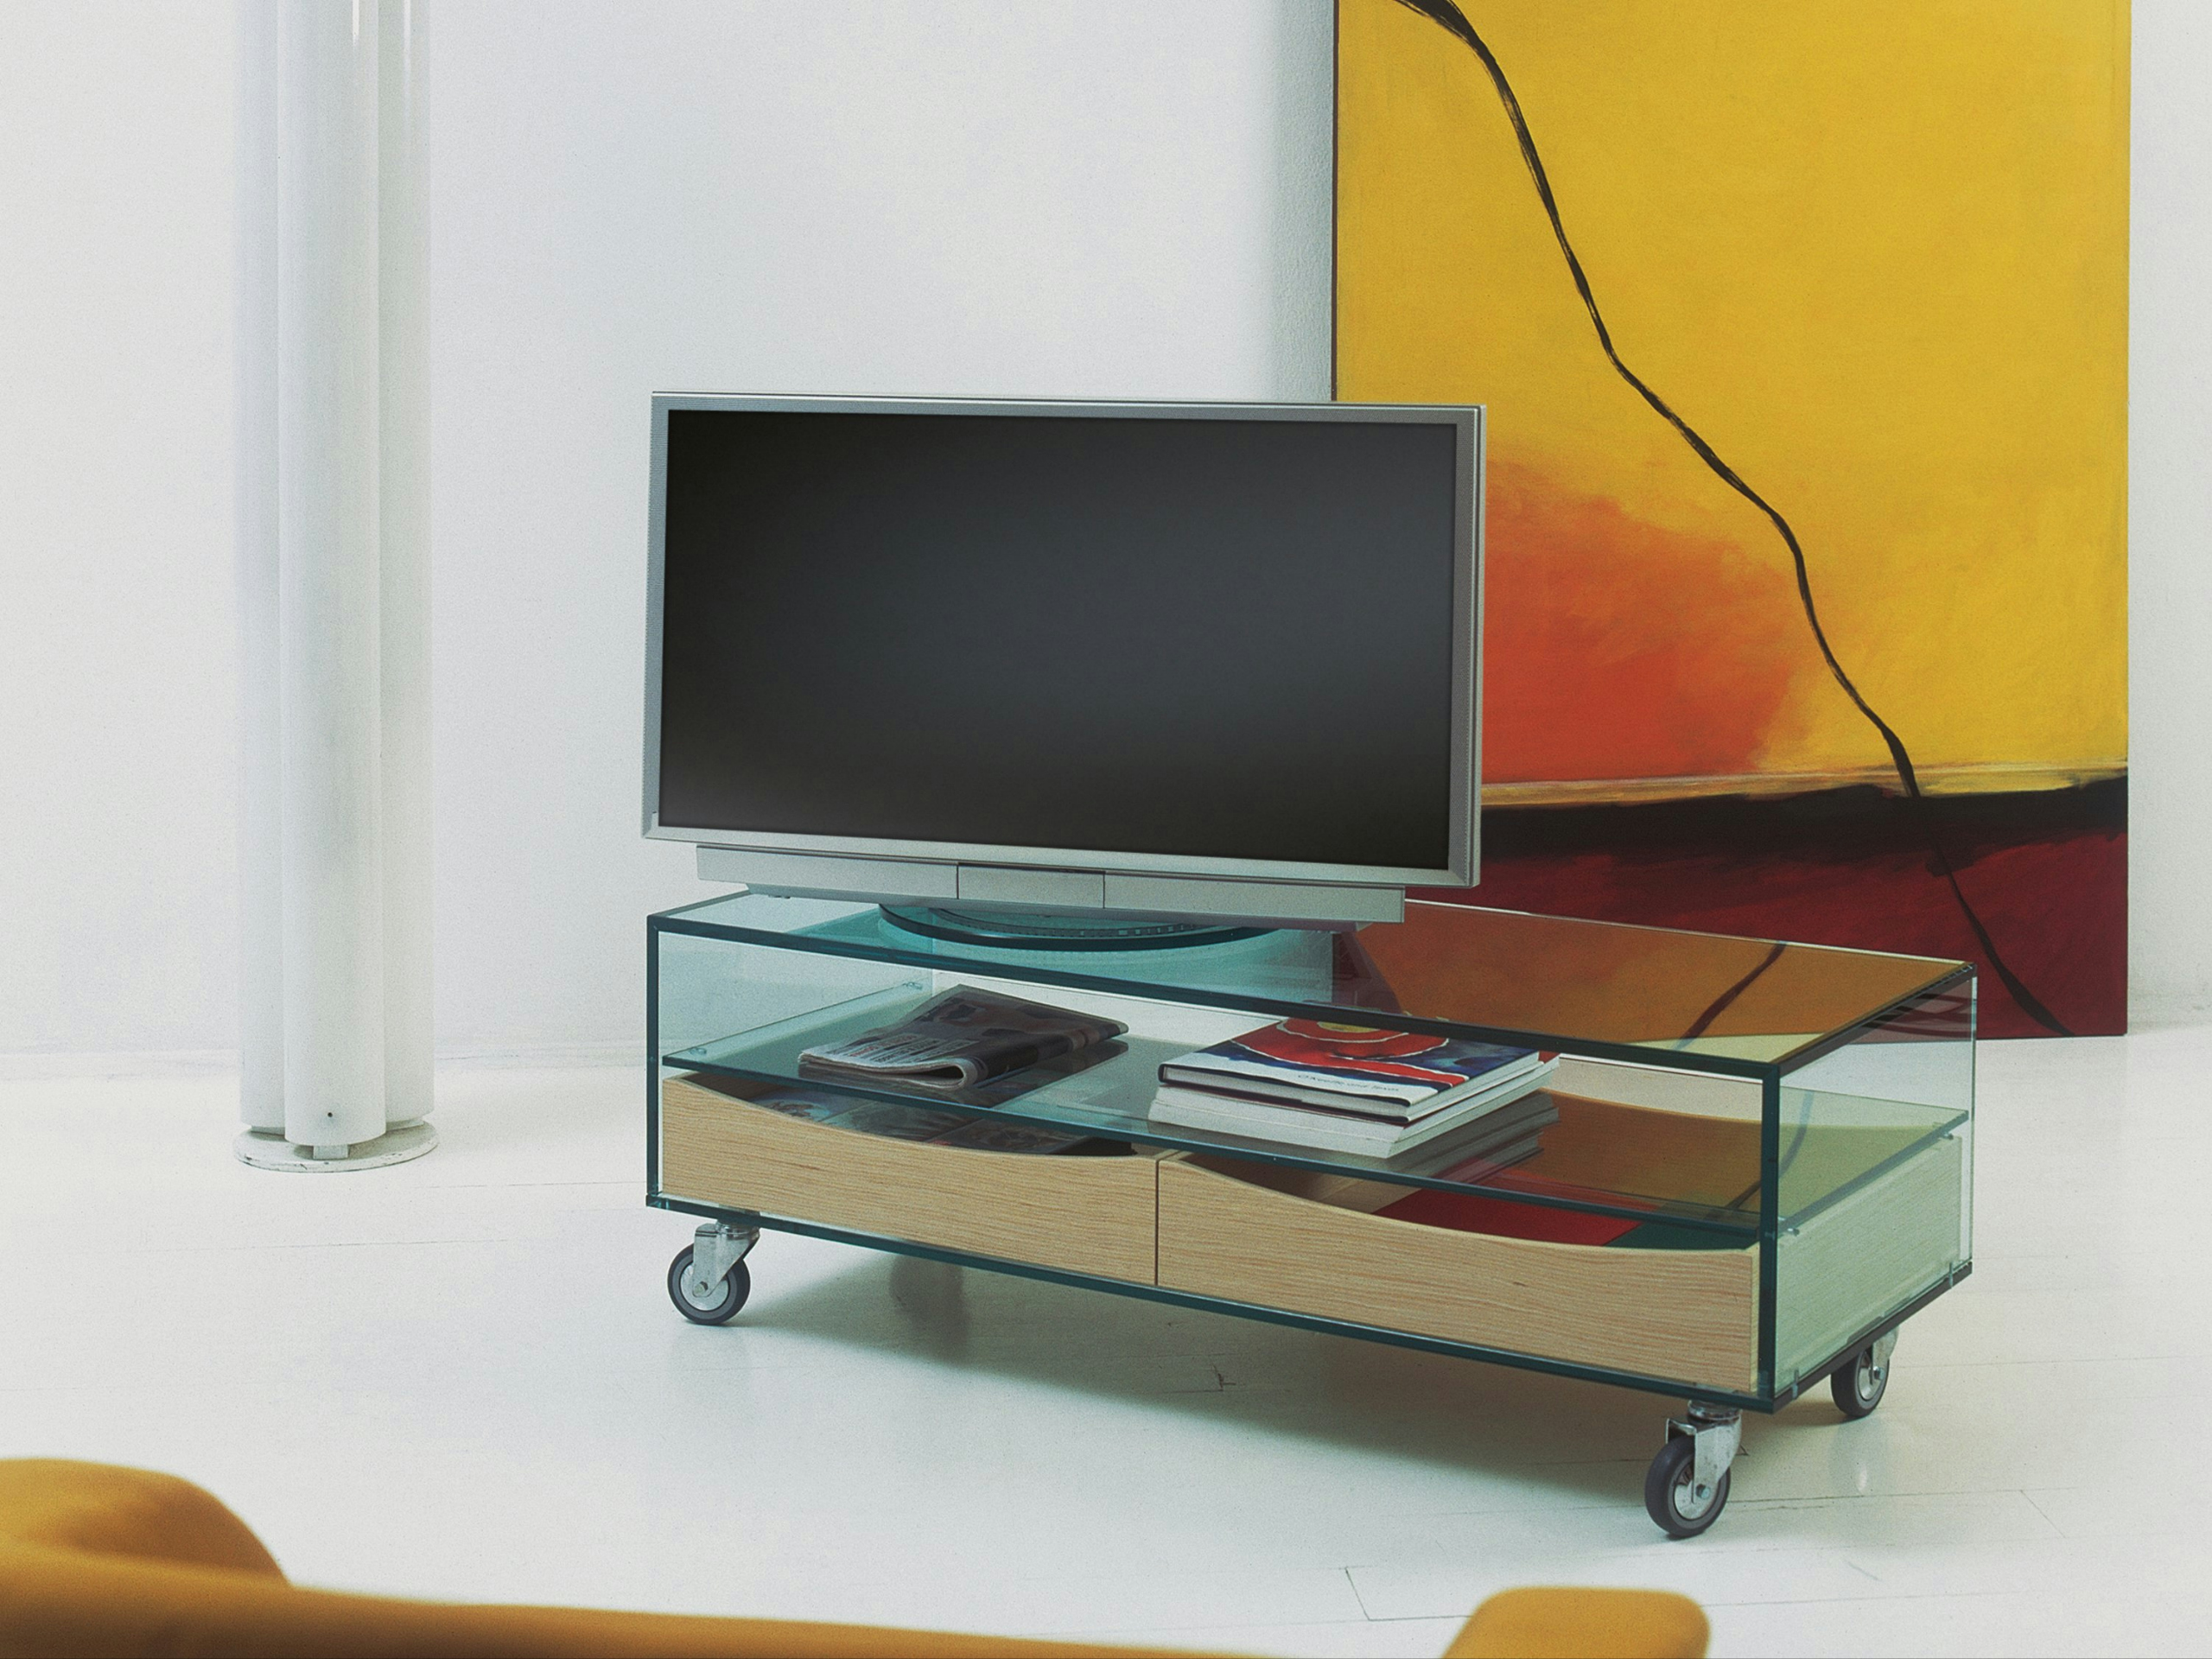 tv m bel aus glas auf rollen com basso by t d tonelli design design marco gaudenzi. Black Bedroom Furniture Sets. Home Design Ideas